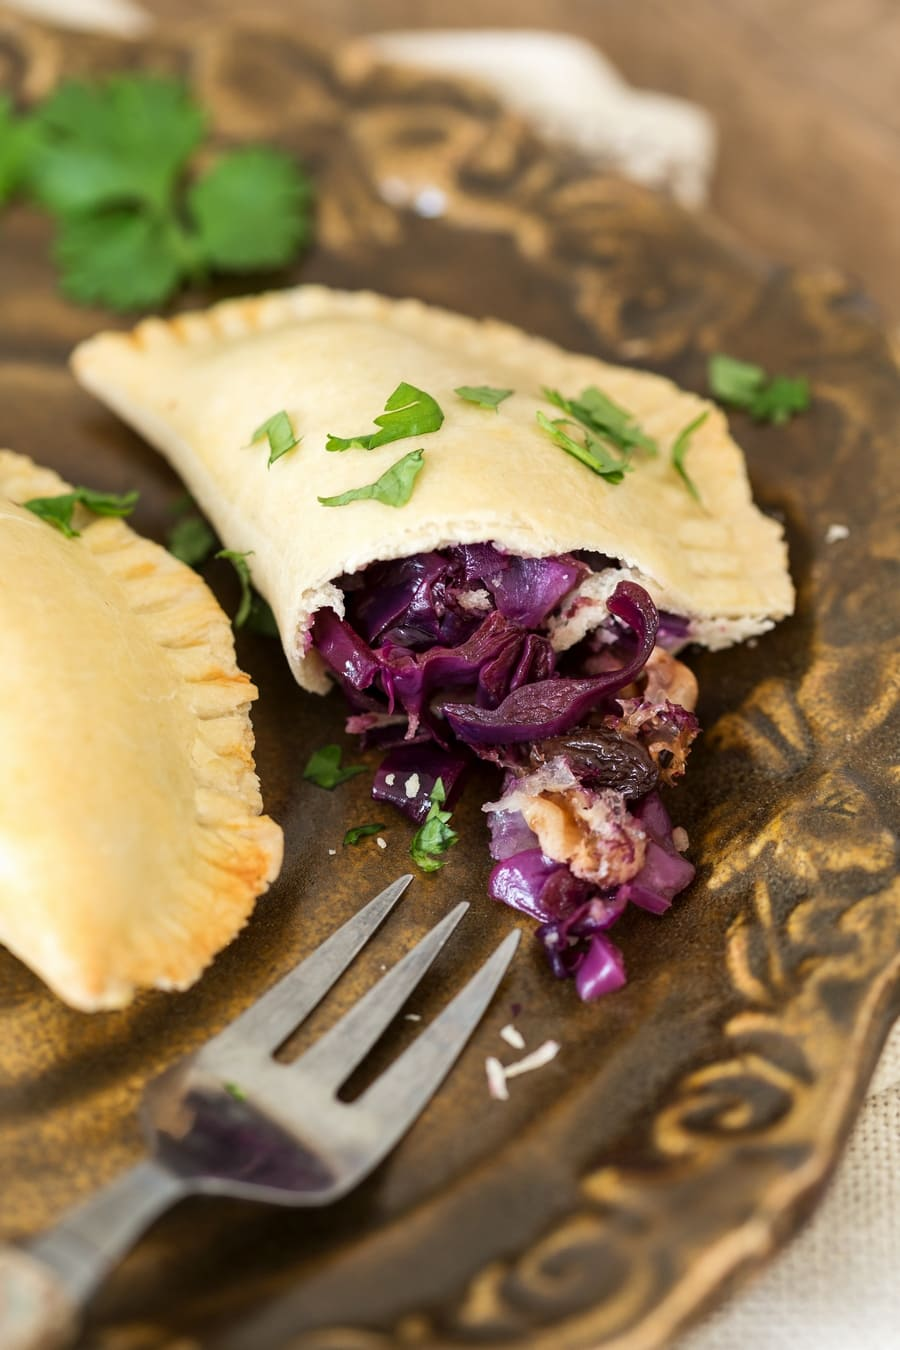 Veggie empanadas showing the filling made with red cabbage, onion, raisins and walnuts.